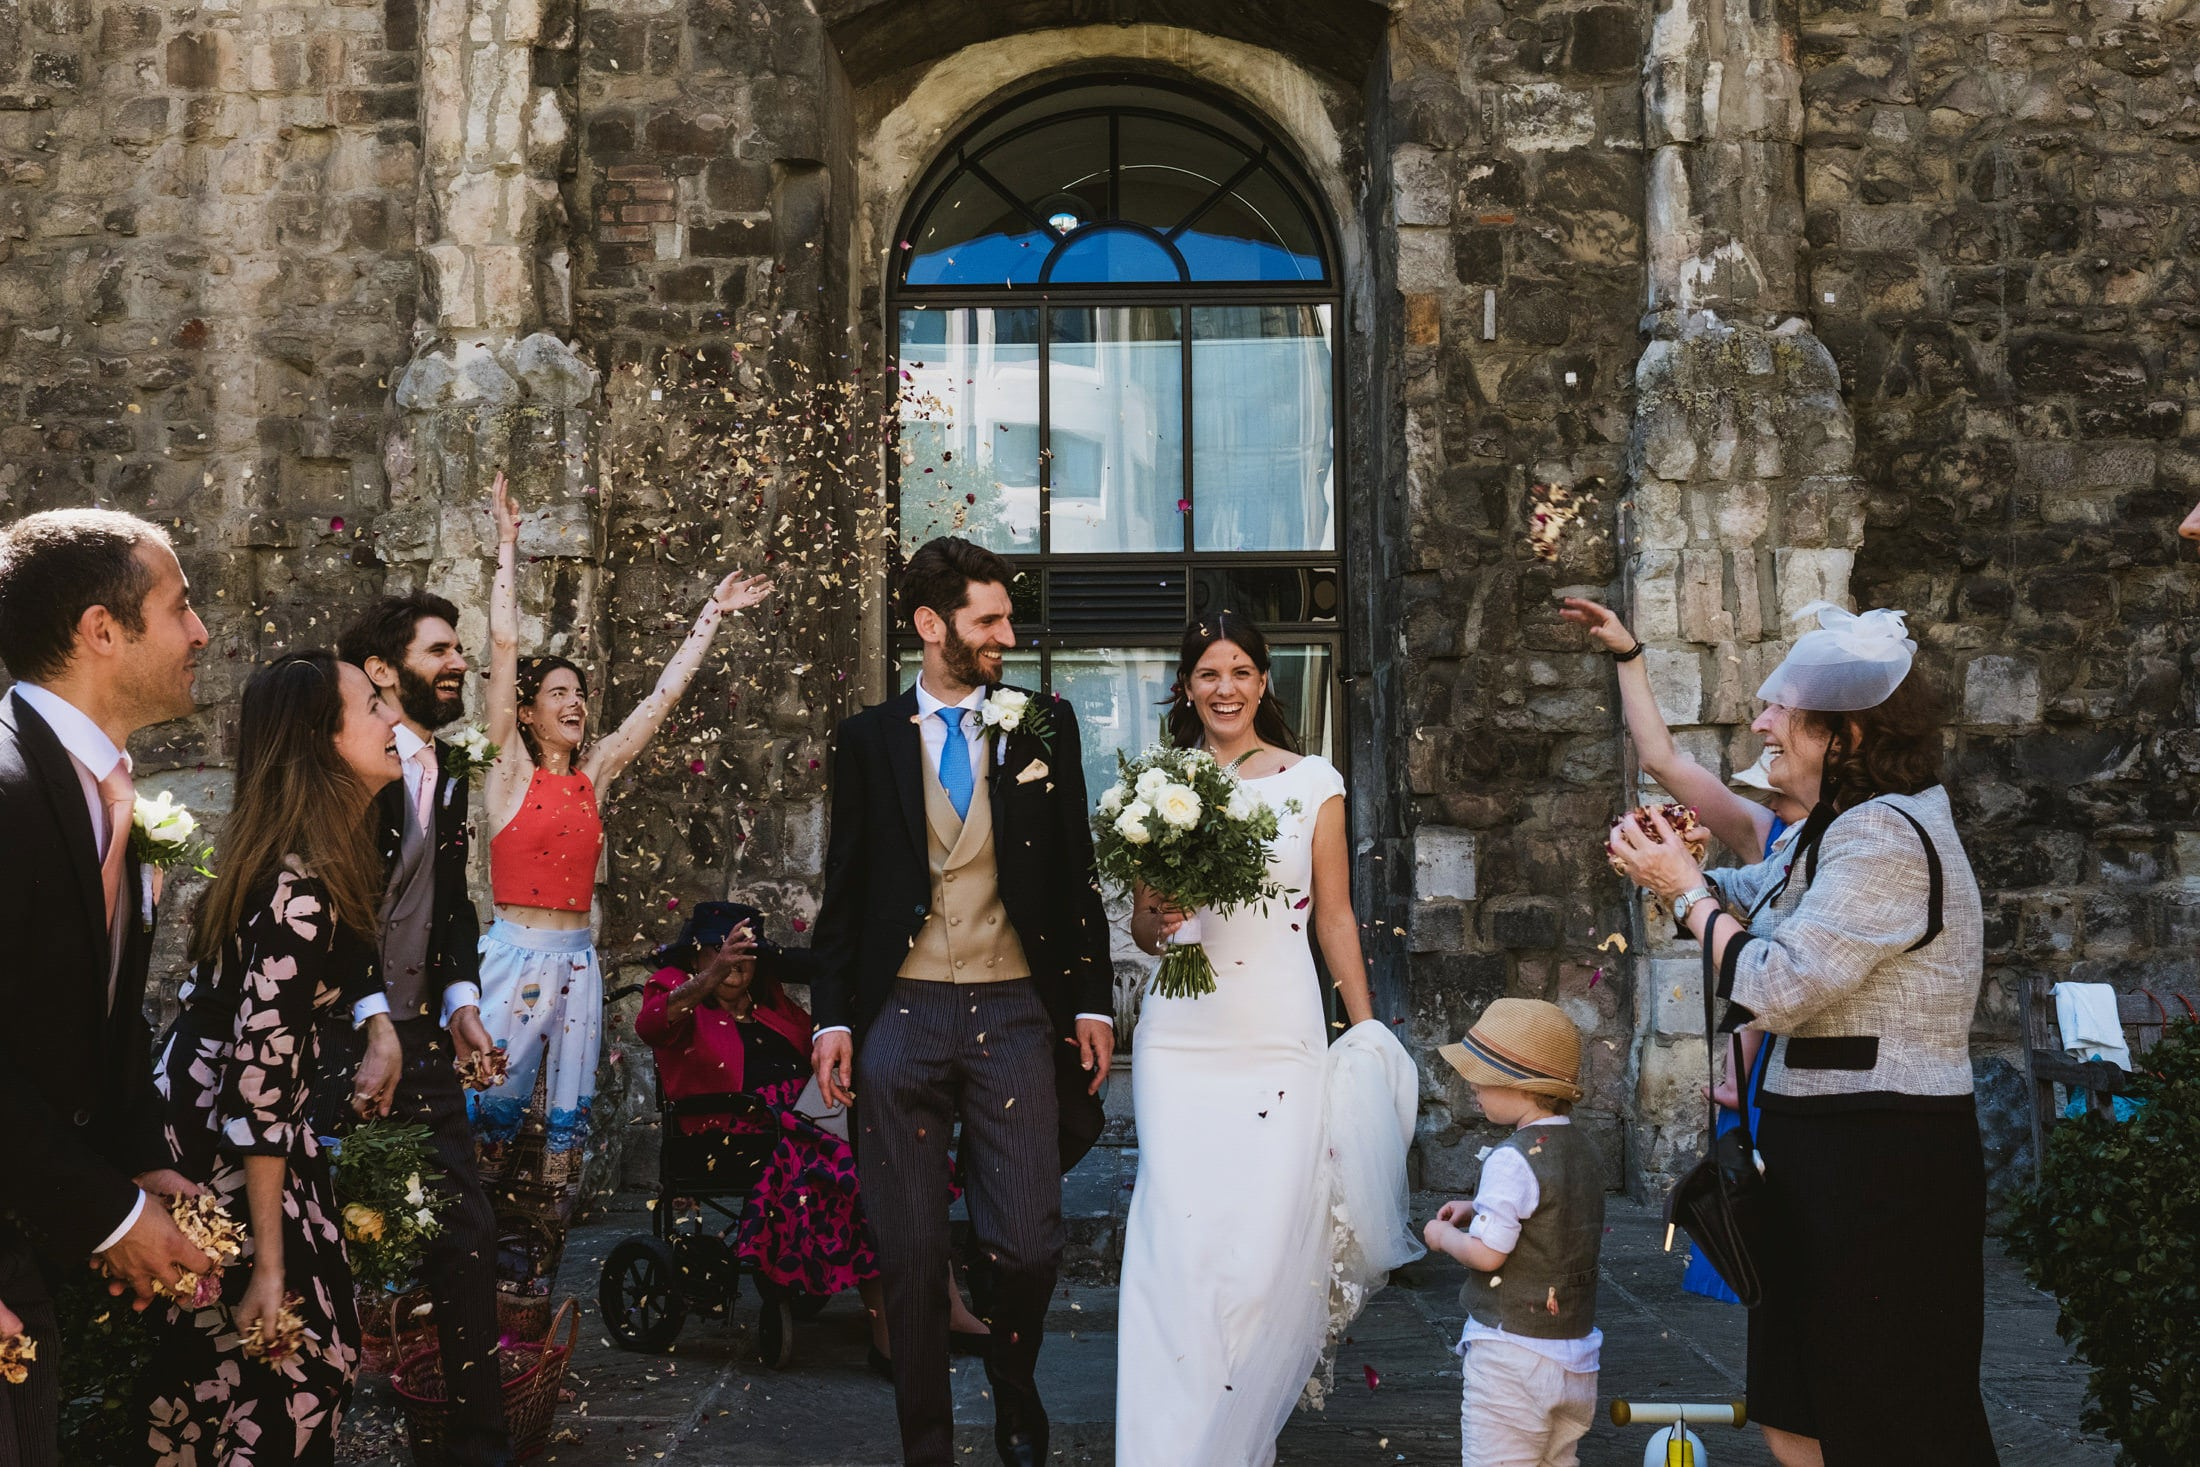 Bride and groom are showered in confetti by their guests at a small London wedding